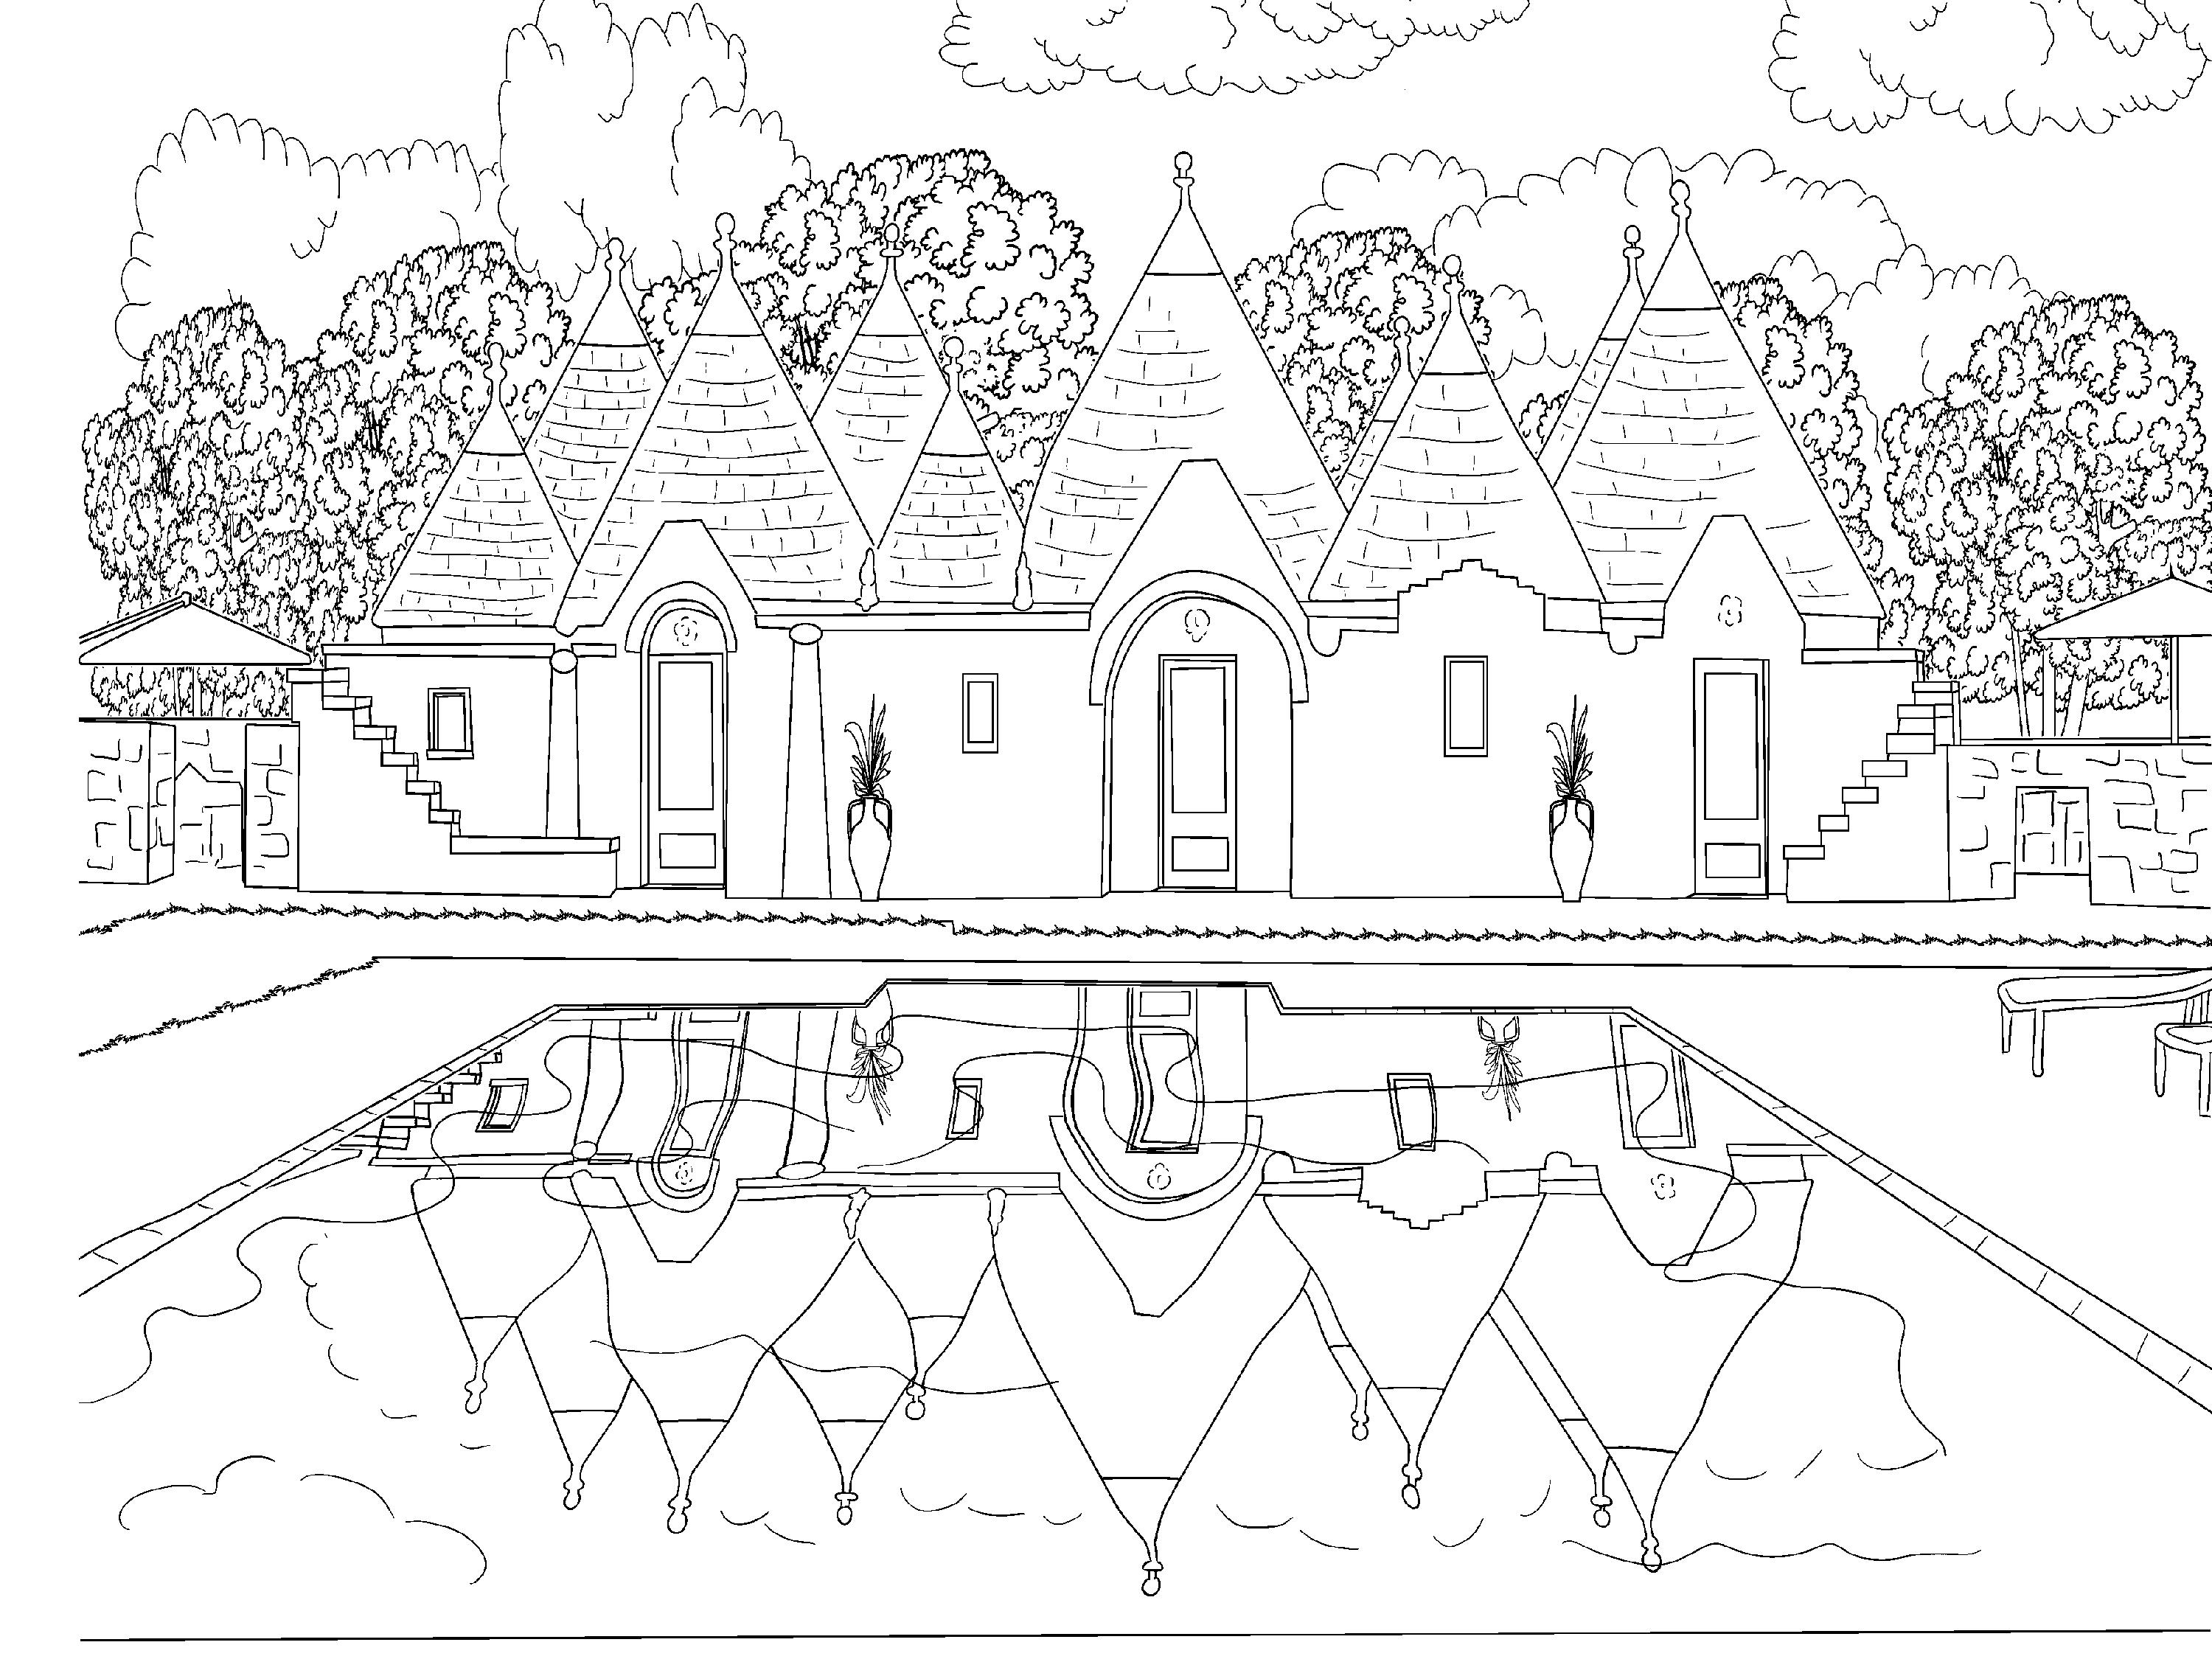 Travel Inspired Beautiful Scenery Colouring Pages for Grown Ups